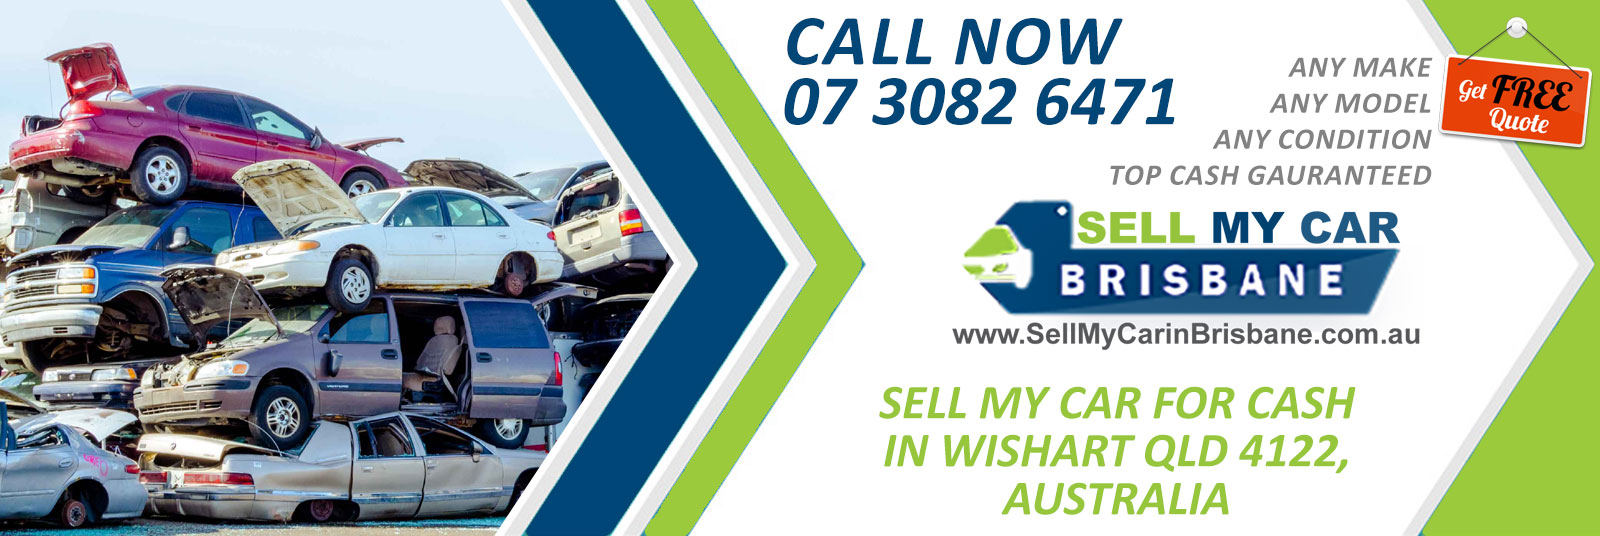 Sell My car in Wishart